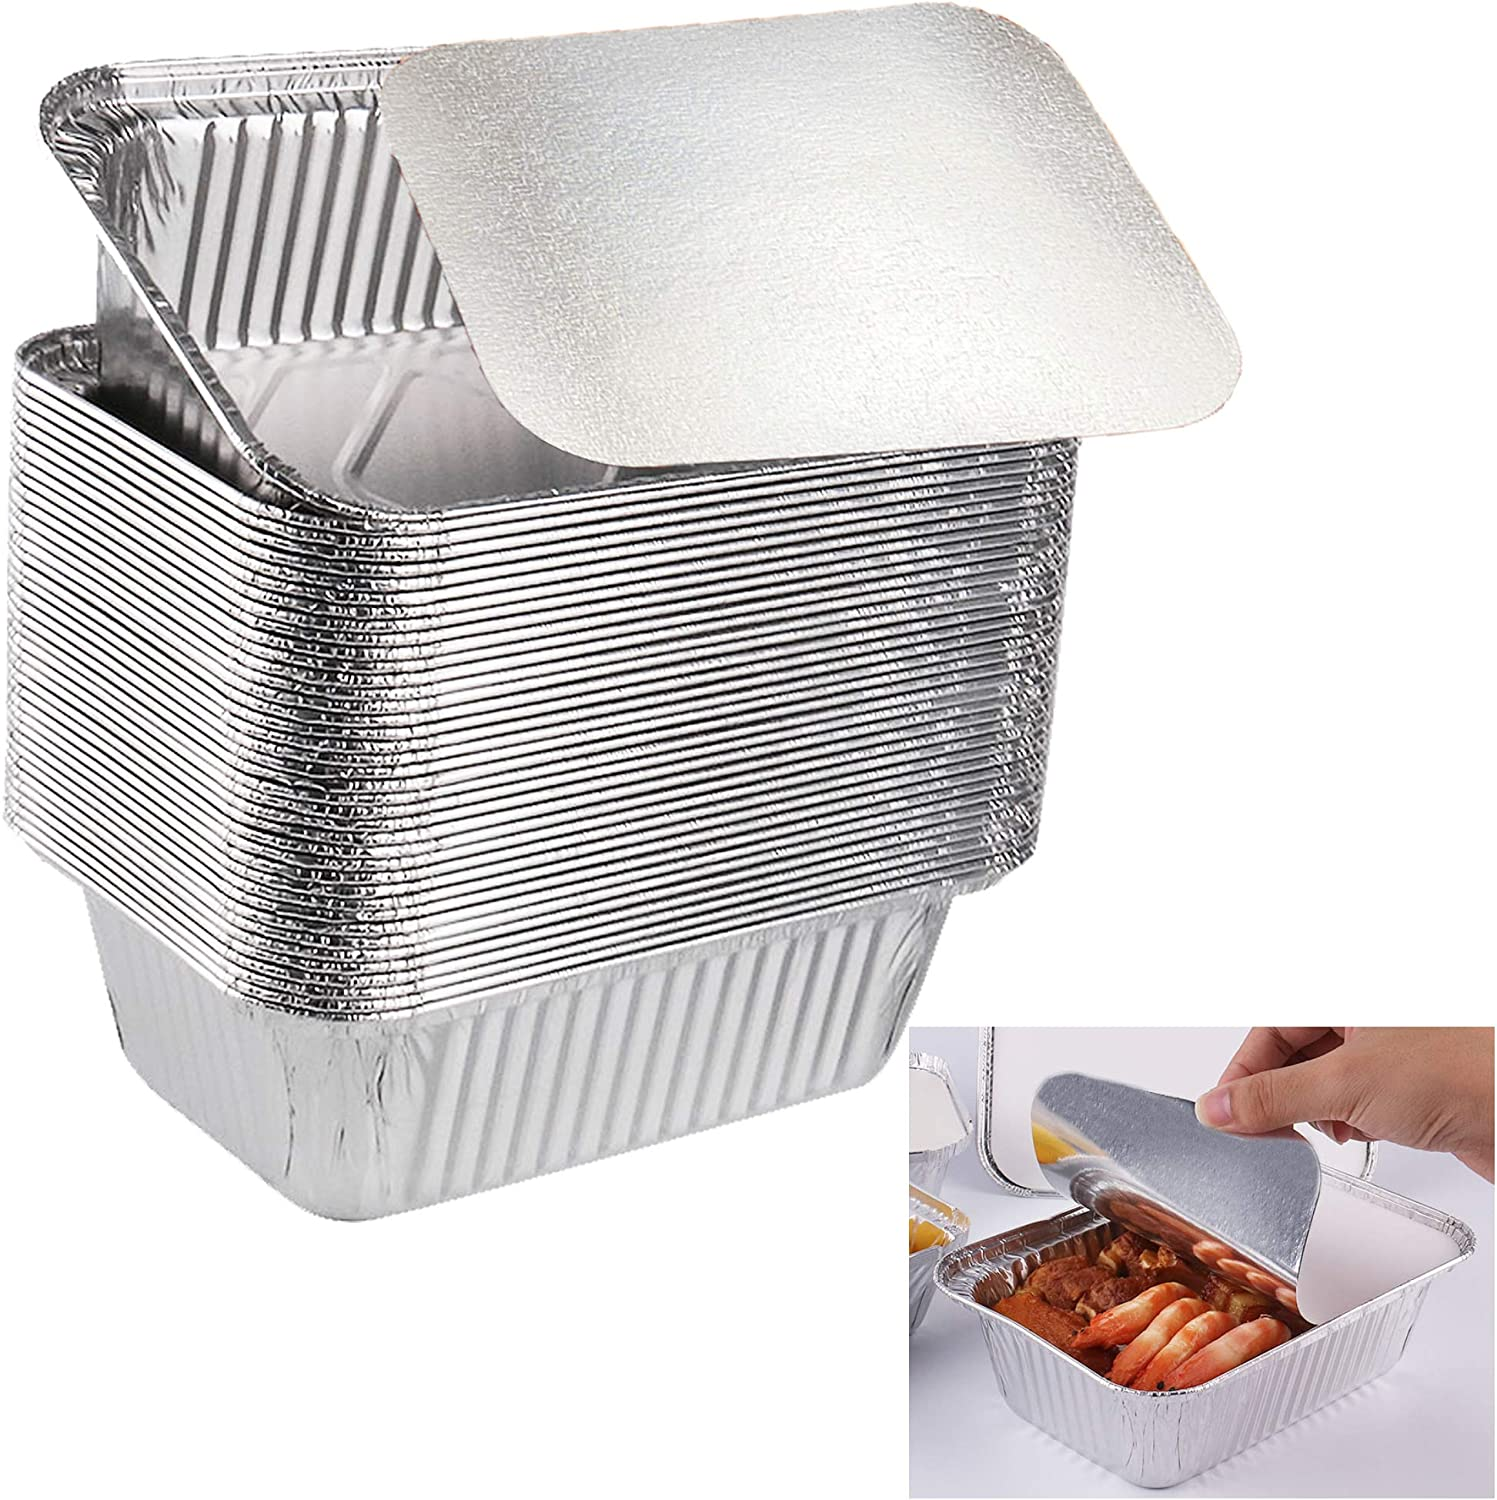 Jeasona 50 Pcs Foil Trays with Lids 500ml for Batch Cooking//Roasting//Baking//Freezing//BBQ